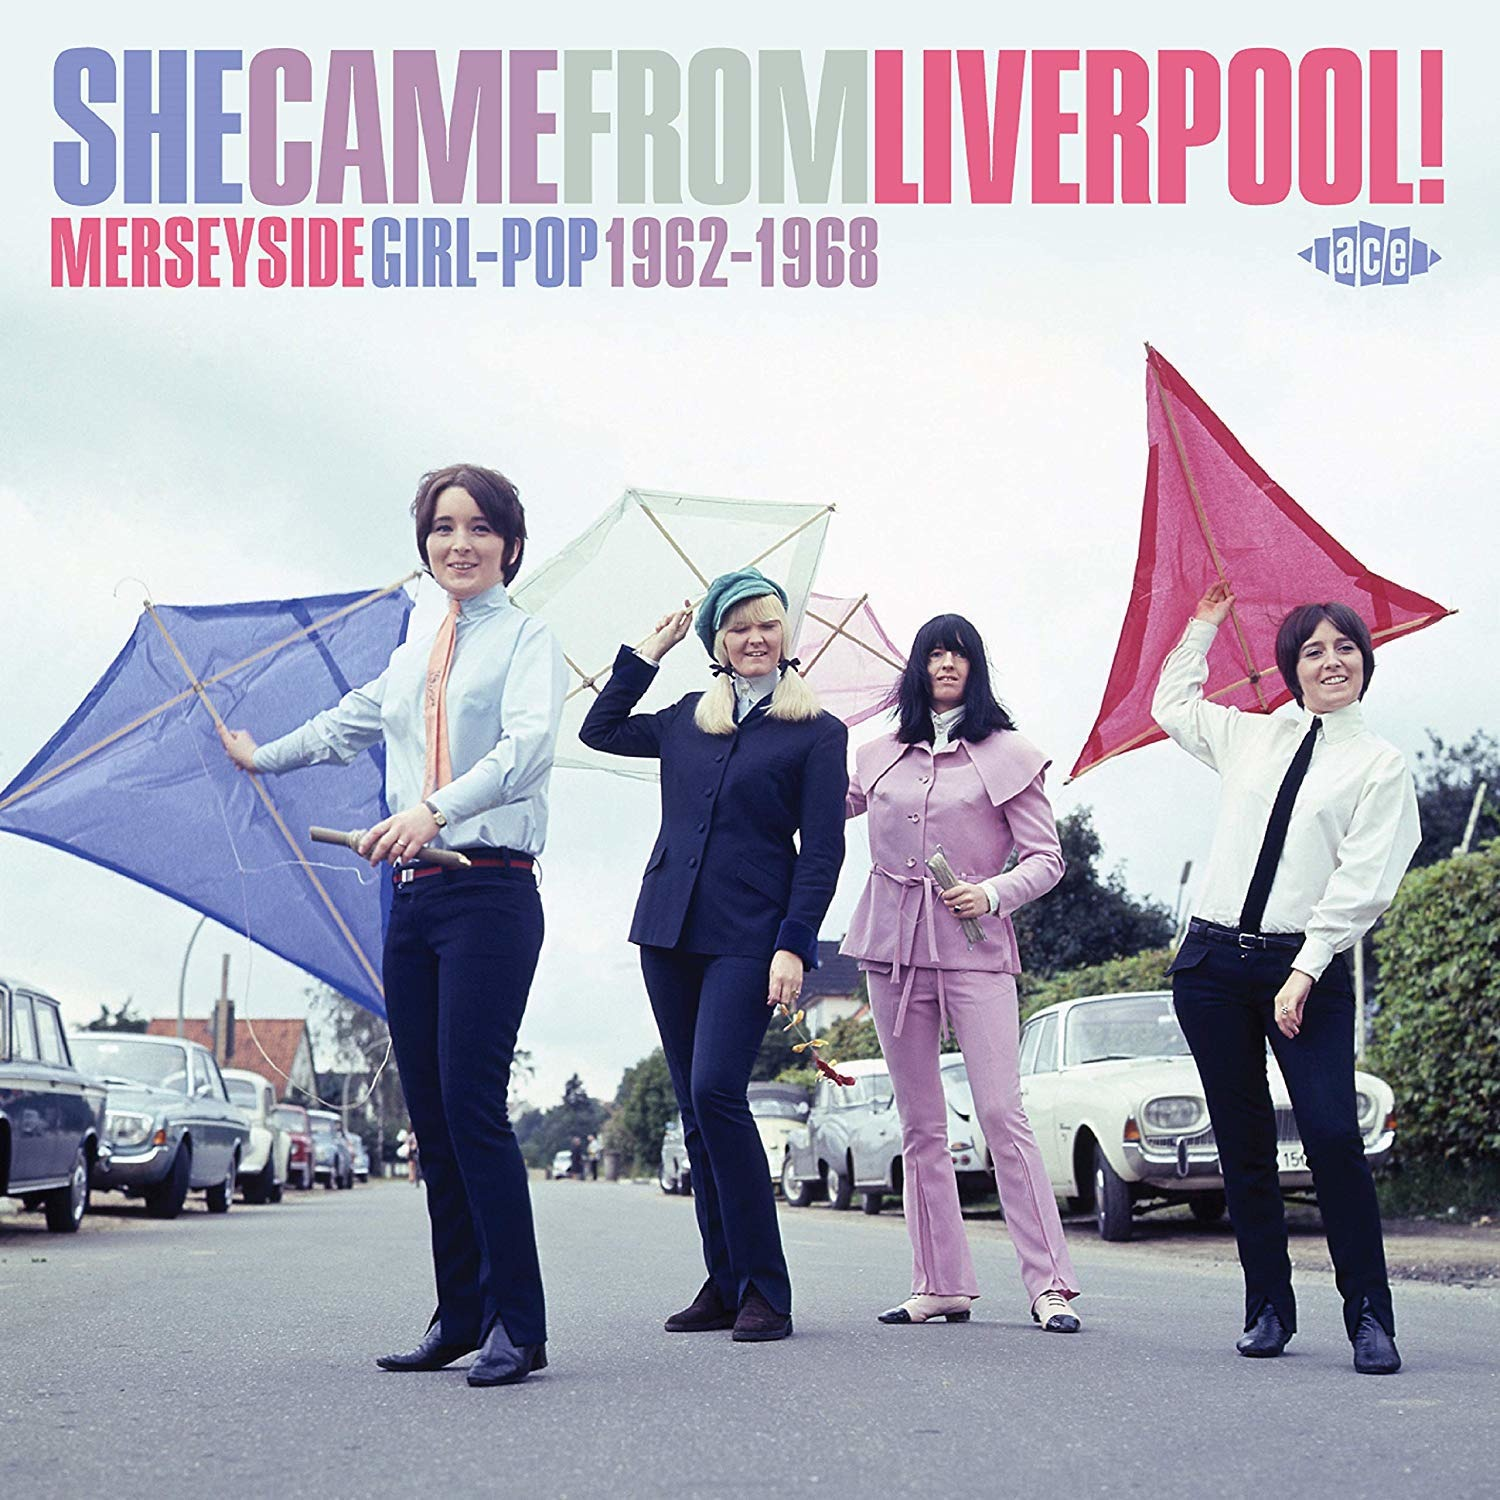 She Came From Liverpool! Merseyside Girl Pop 1962-1968 - Various Artists - Musik - ACE - 0029667096829 - November 29, 2019